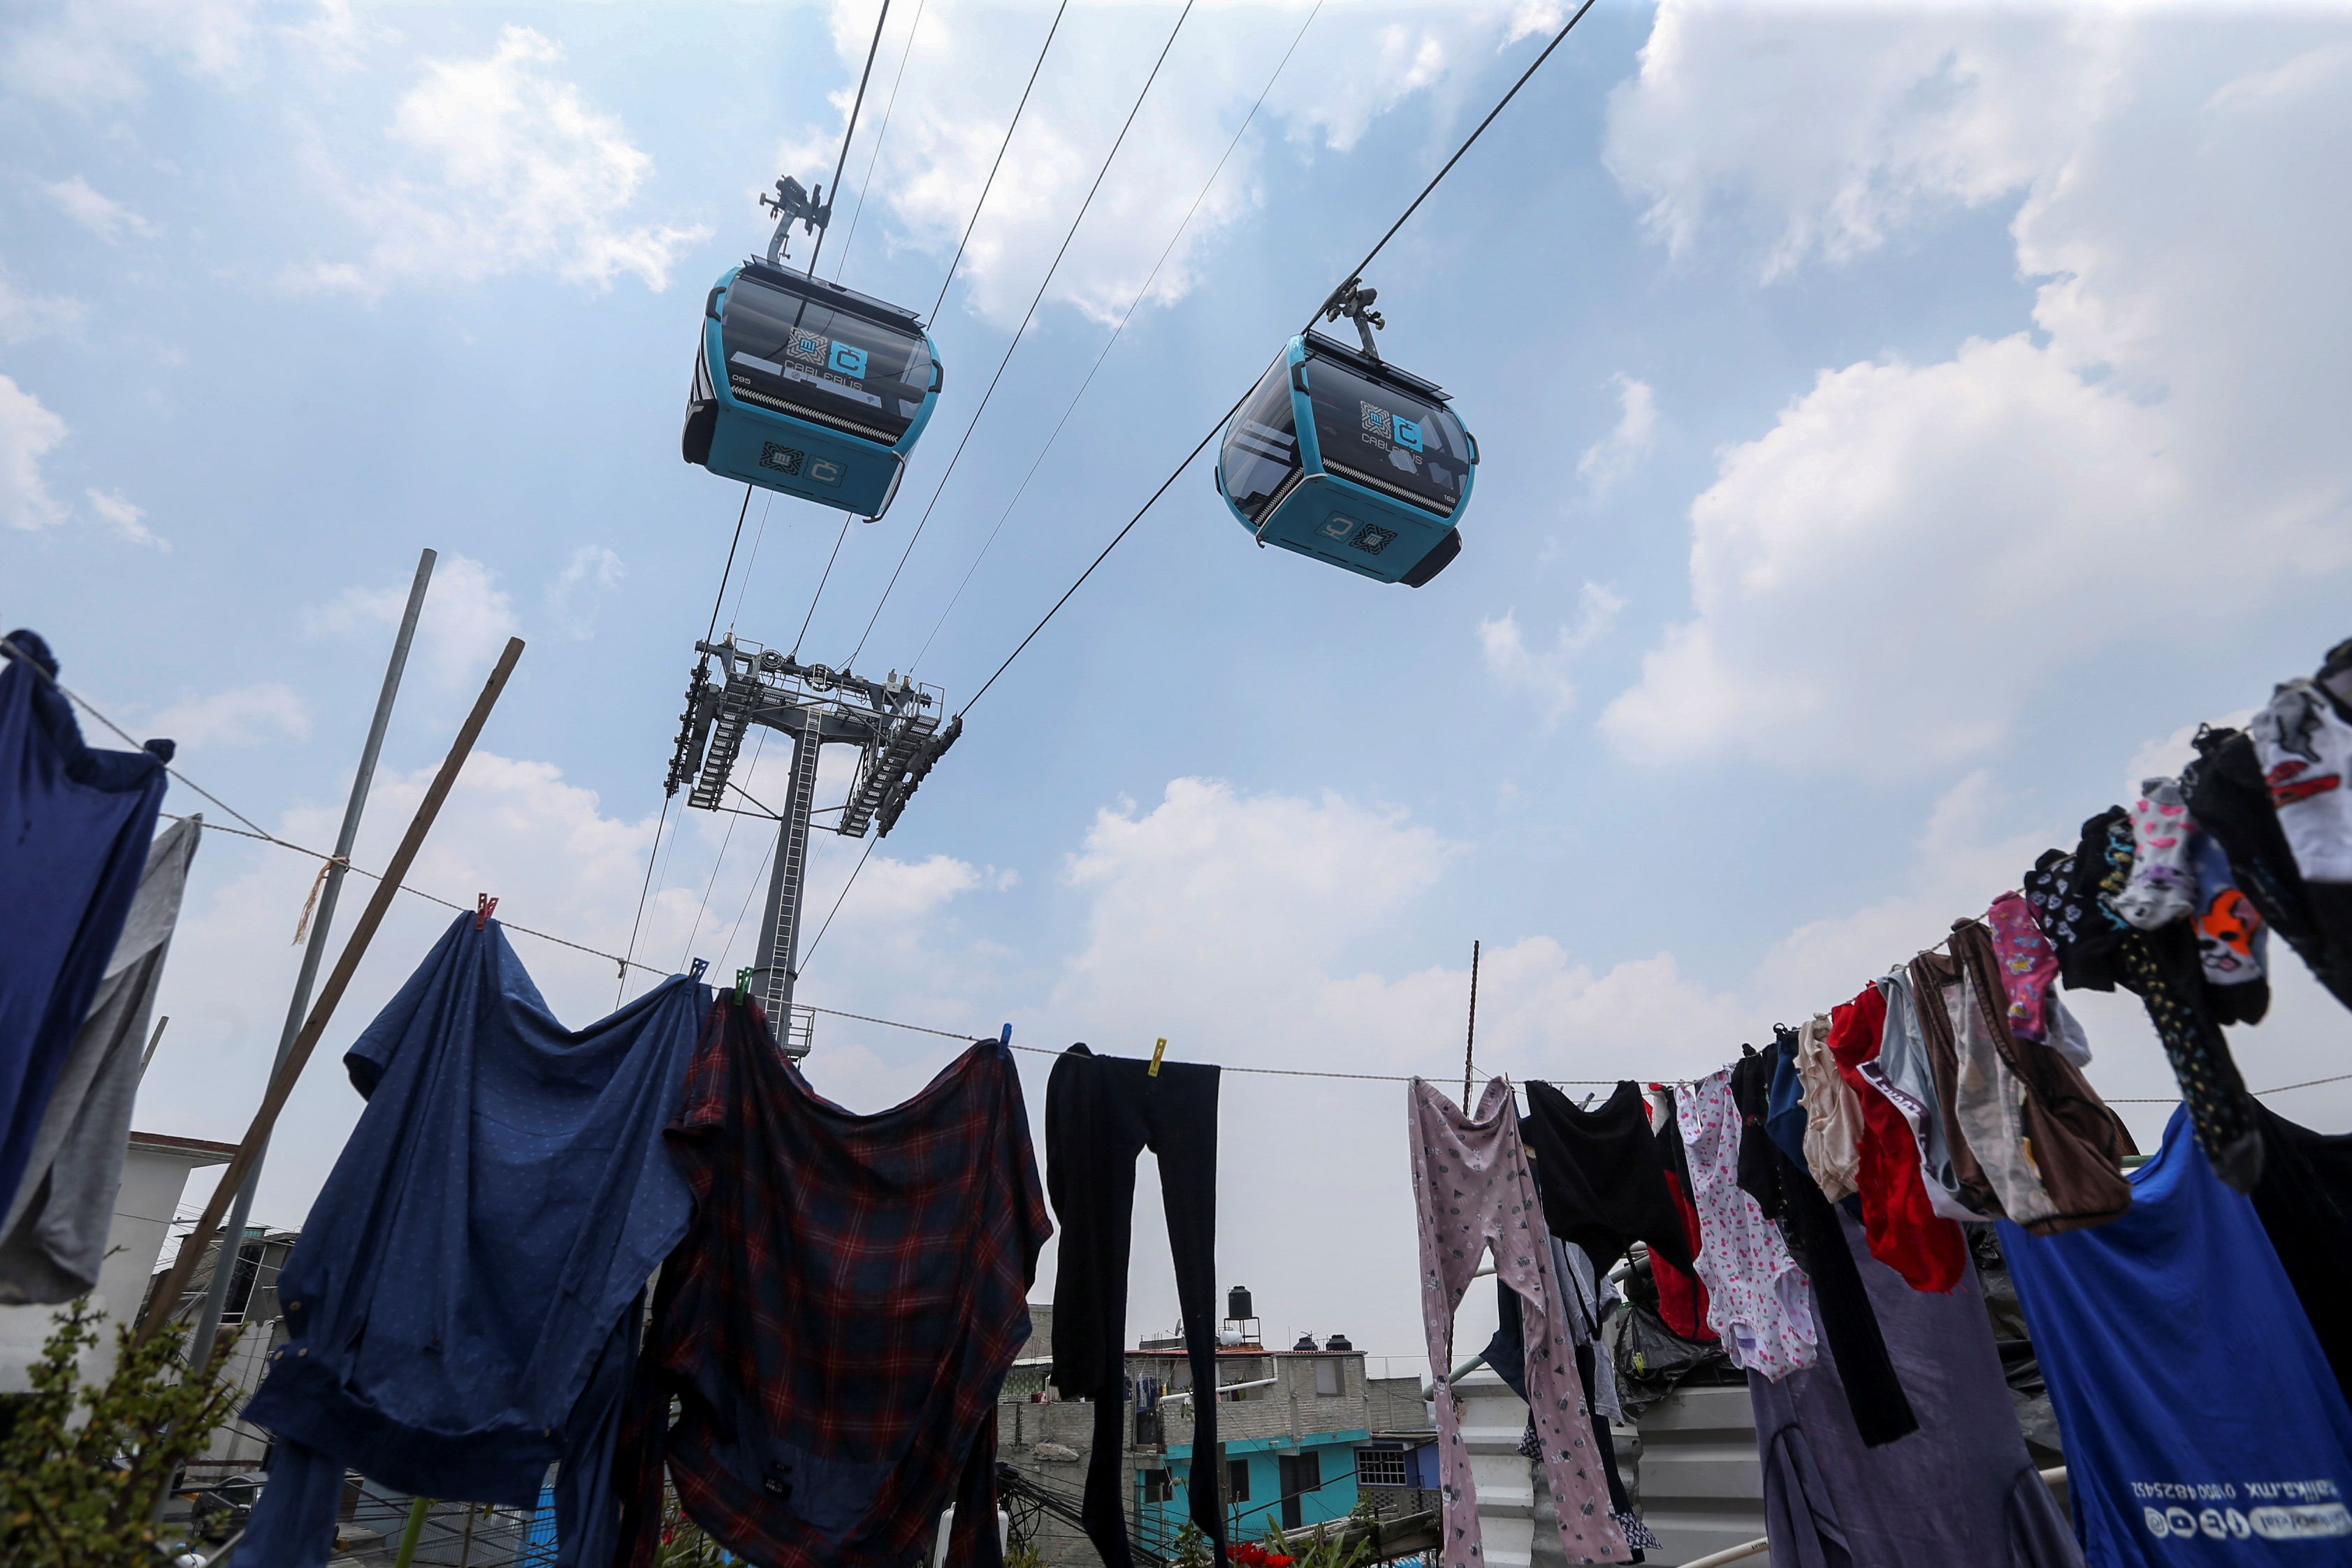 A general view shows the line of a cable car system dubbed the Cablebus during the inauguration of a section in Mexico City, Mexico, July 11, 2021. REUTERS/Edgard Garrido